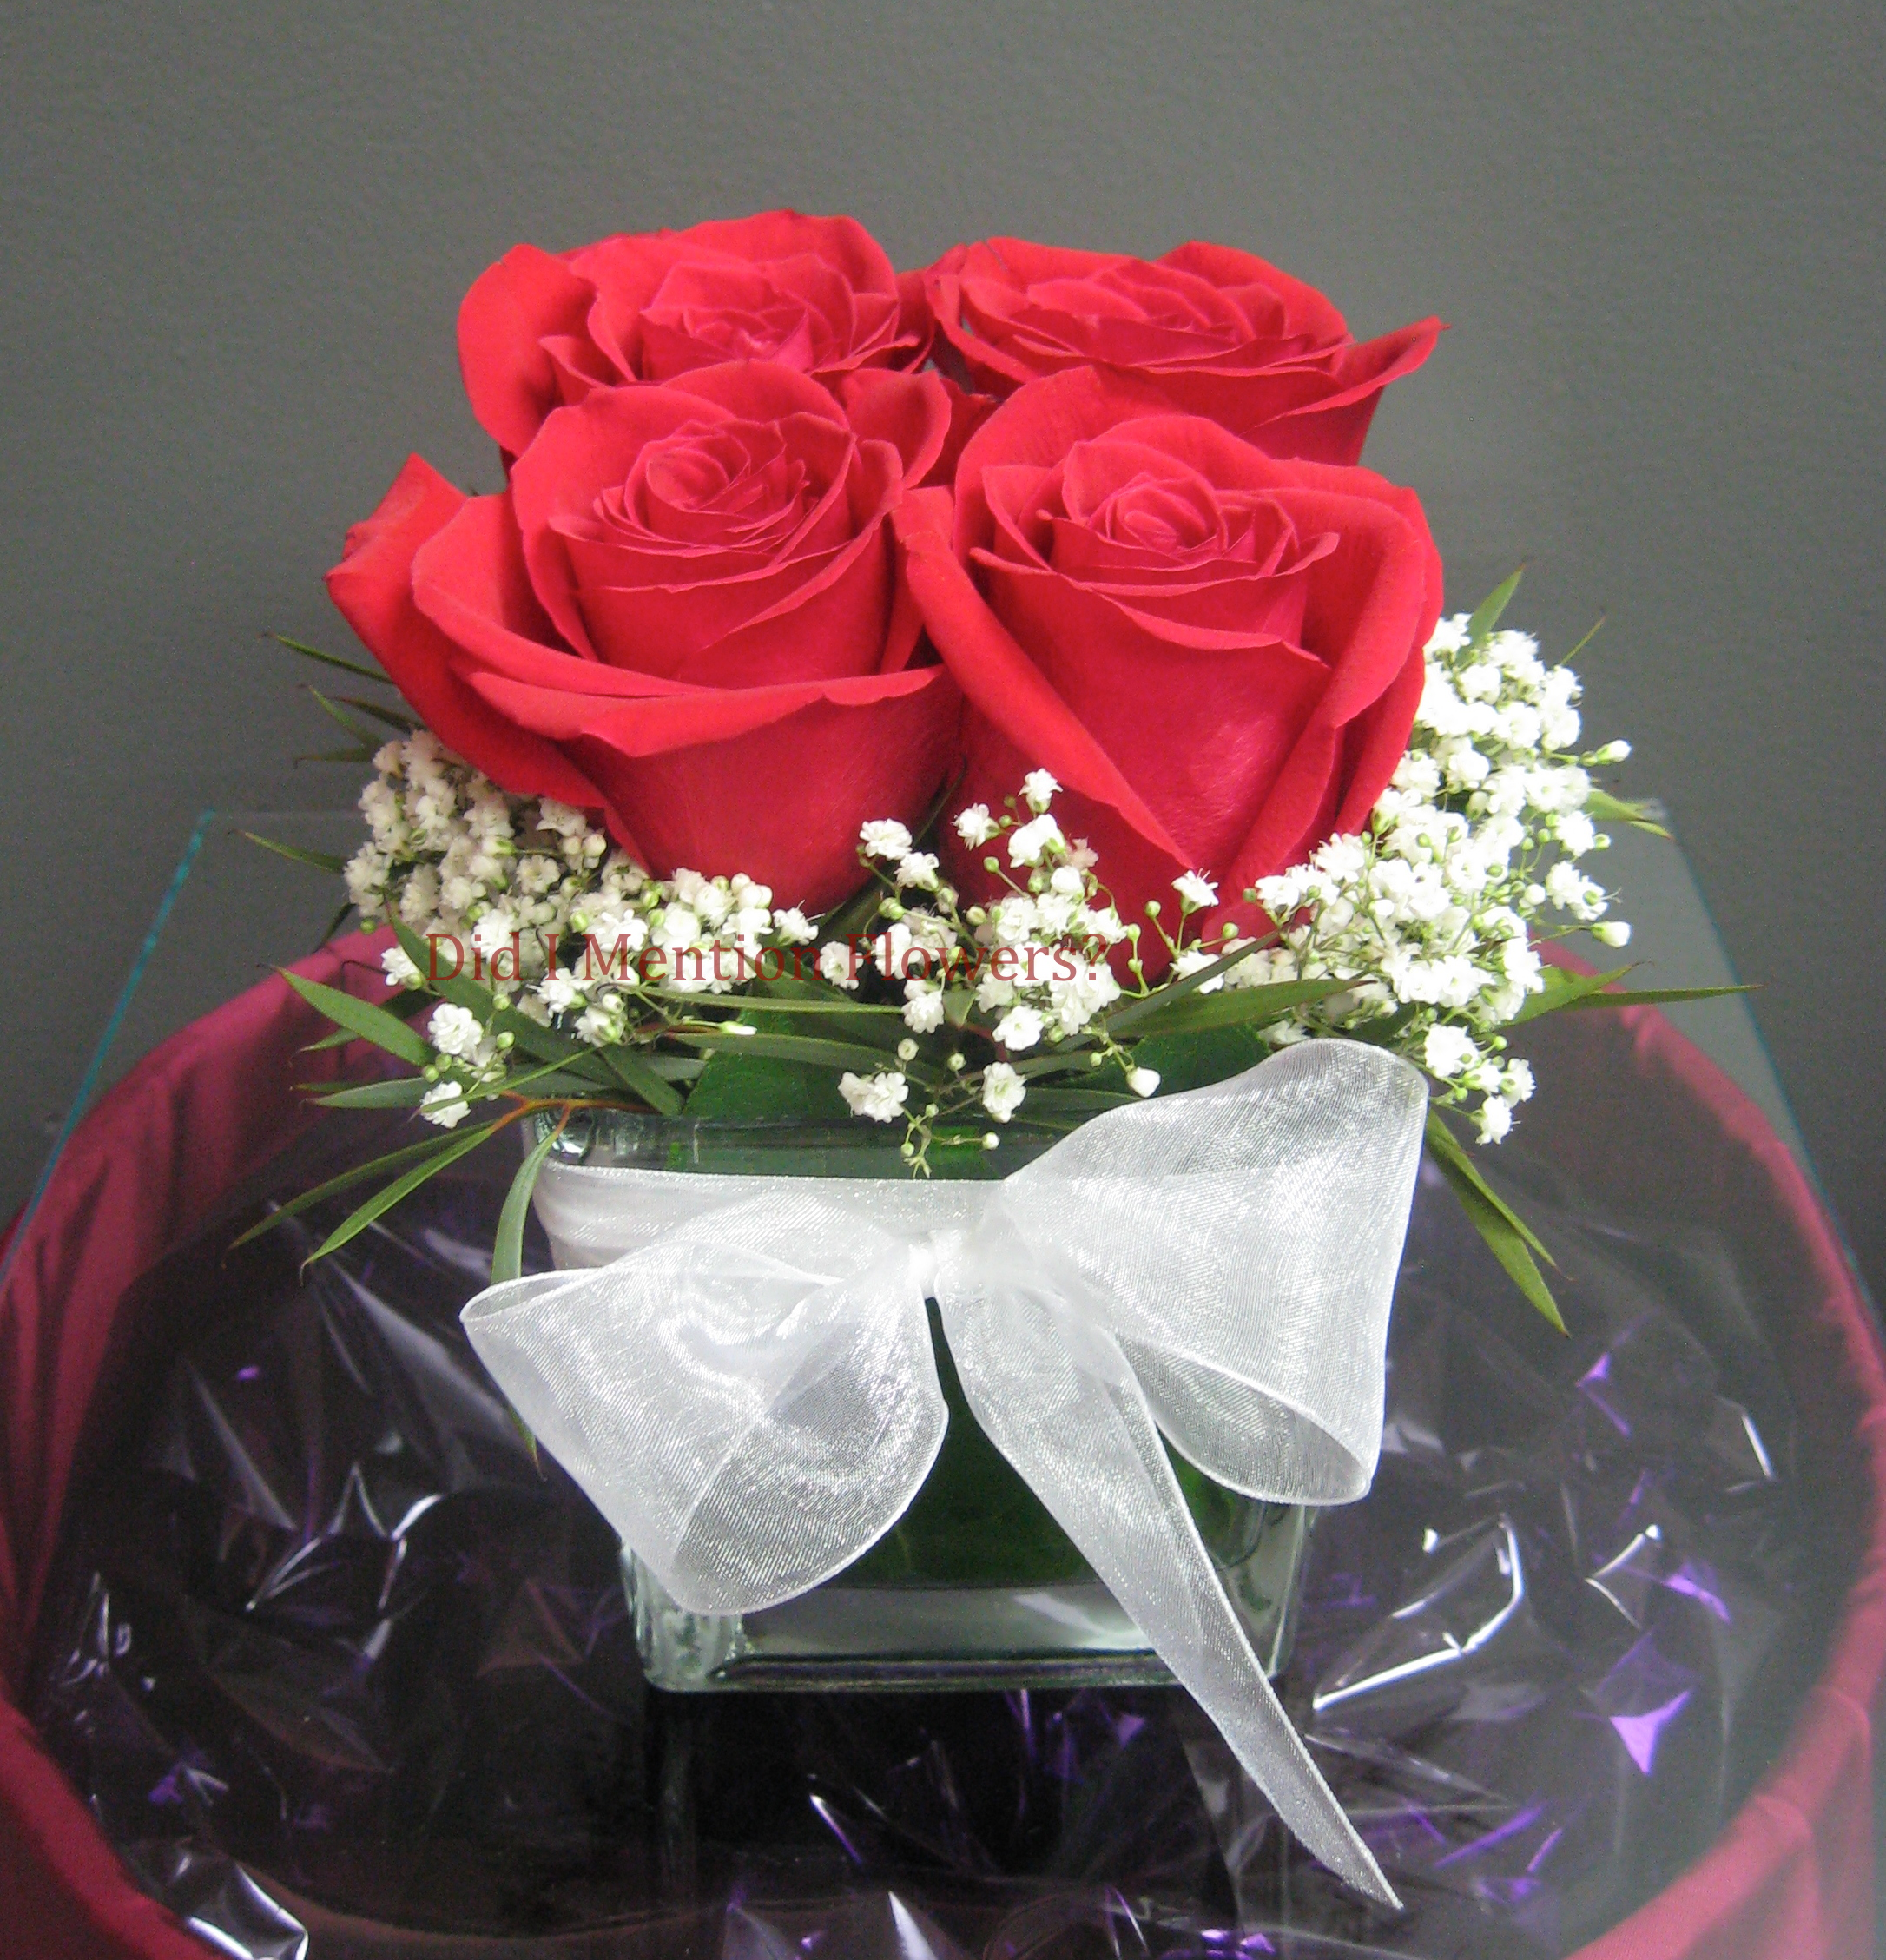 4 - Glass Vase Arrangement